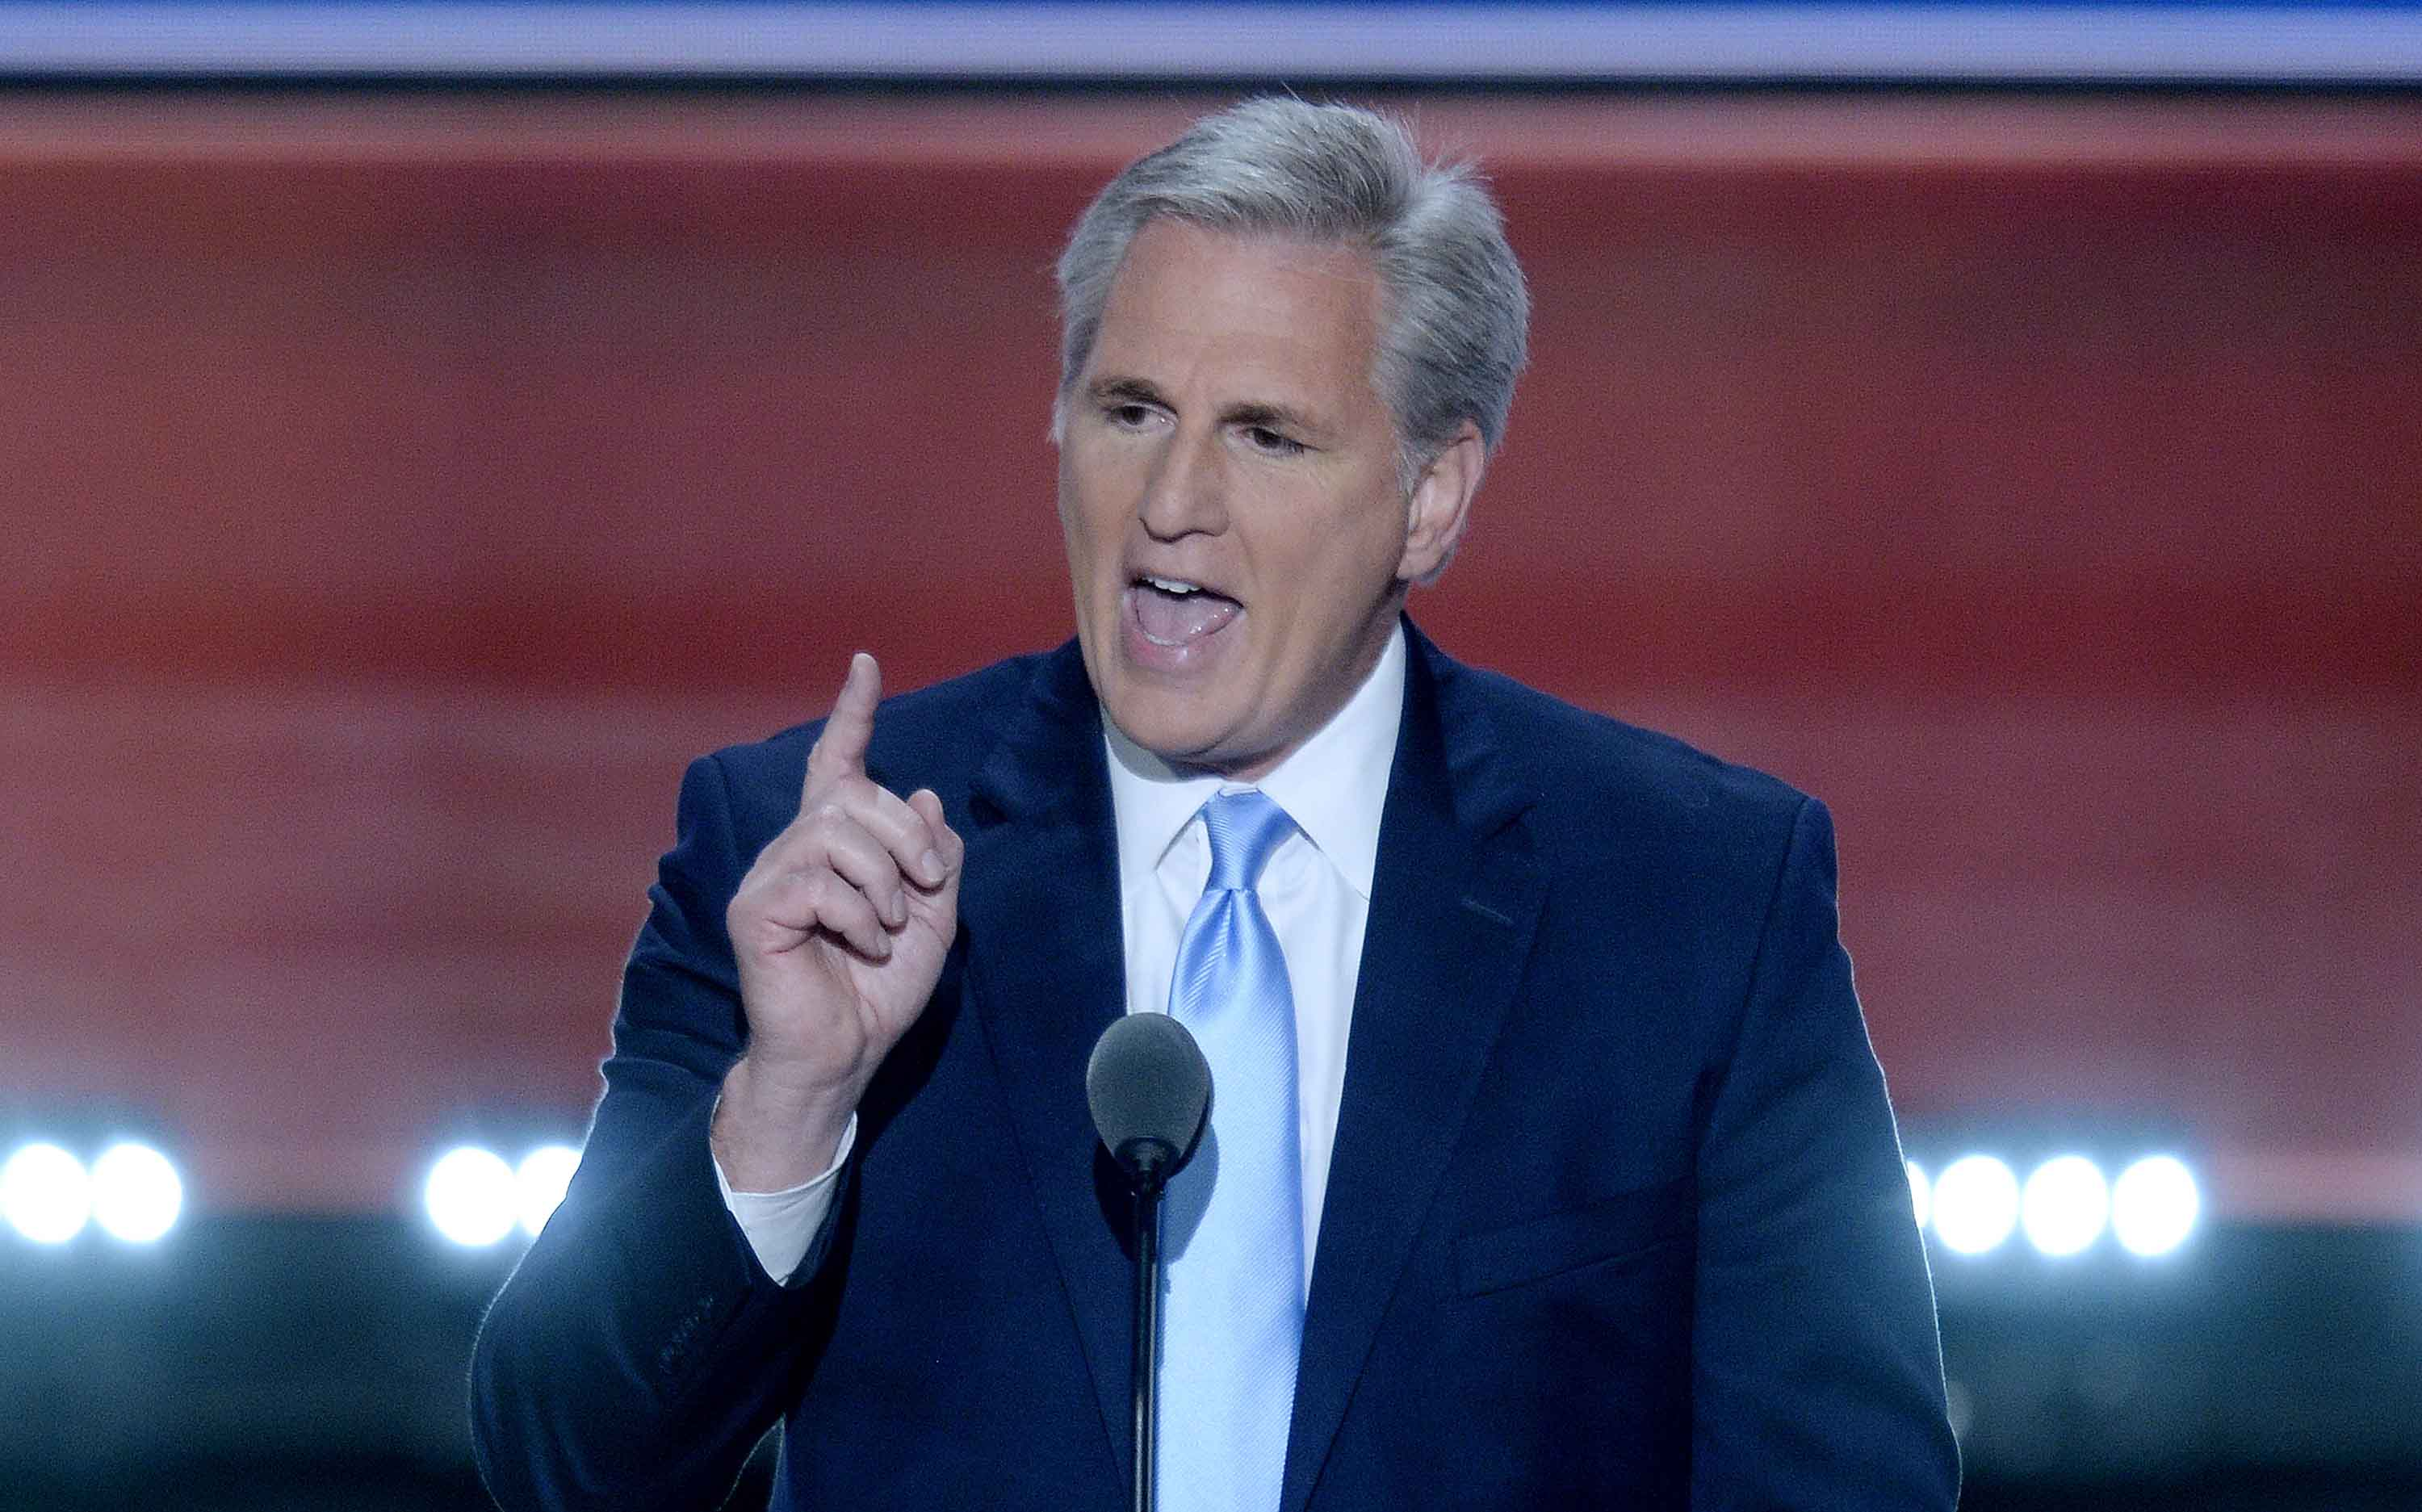 House majority leader Kevin McCarthy, R-Calif., speaks on the second day of the Republican National Convention on Tuesday, July 19, 2016, at Quicken Loans Arena in Cleveland. (Olivier Douliery/Abaca Press/TNS)